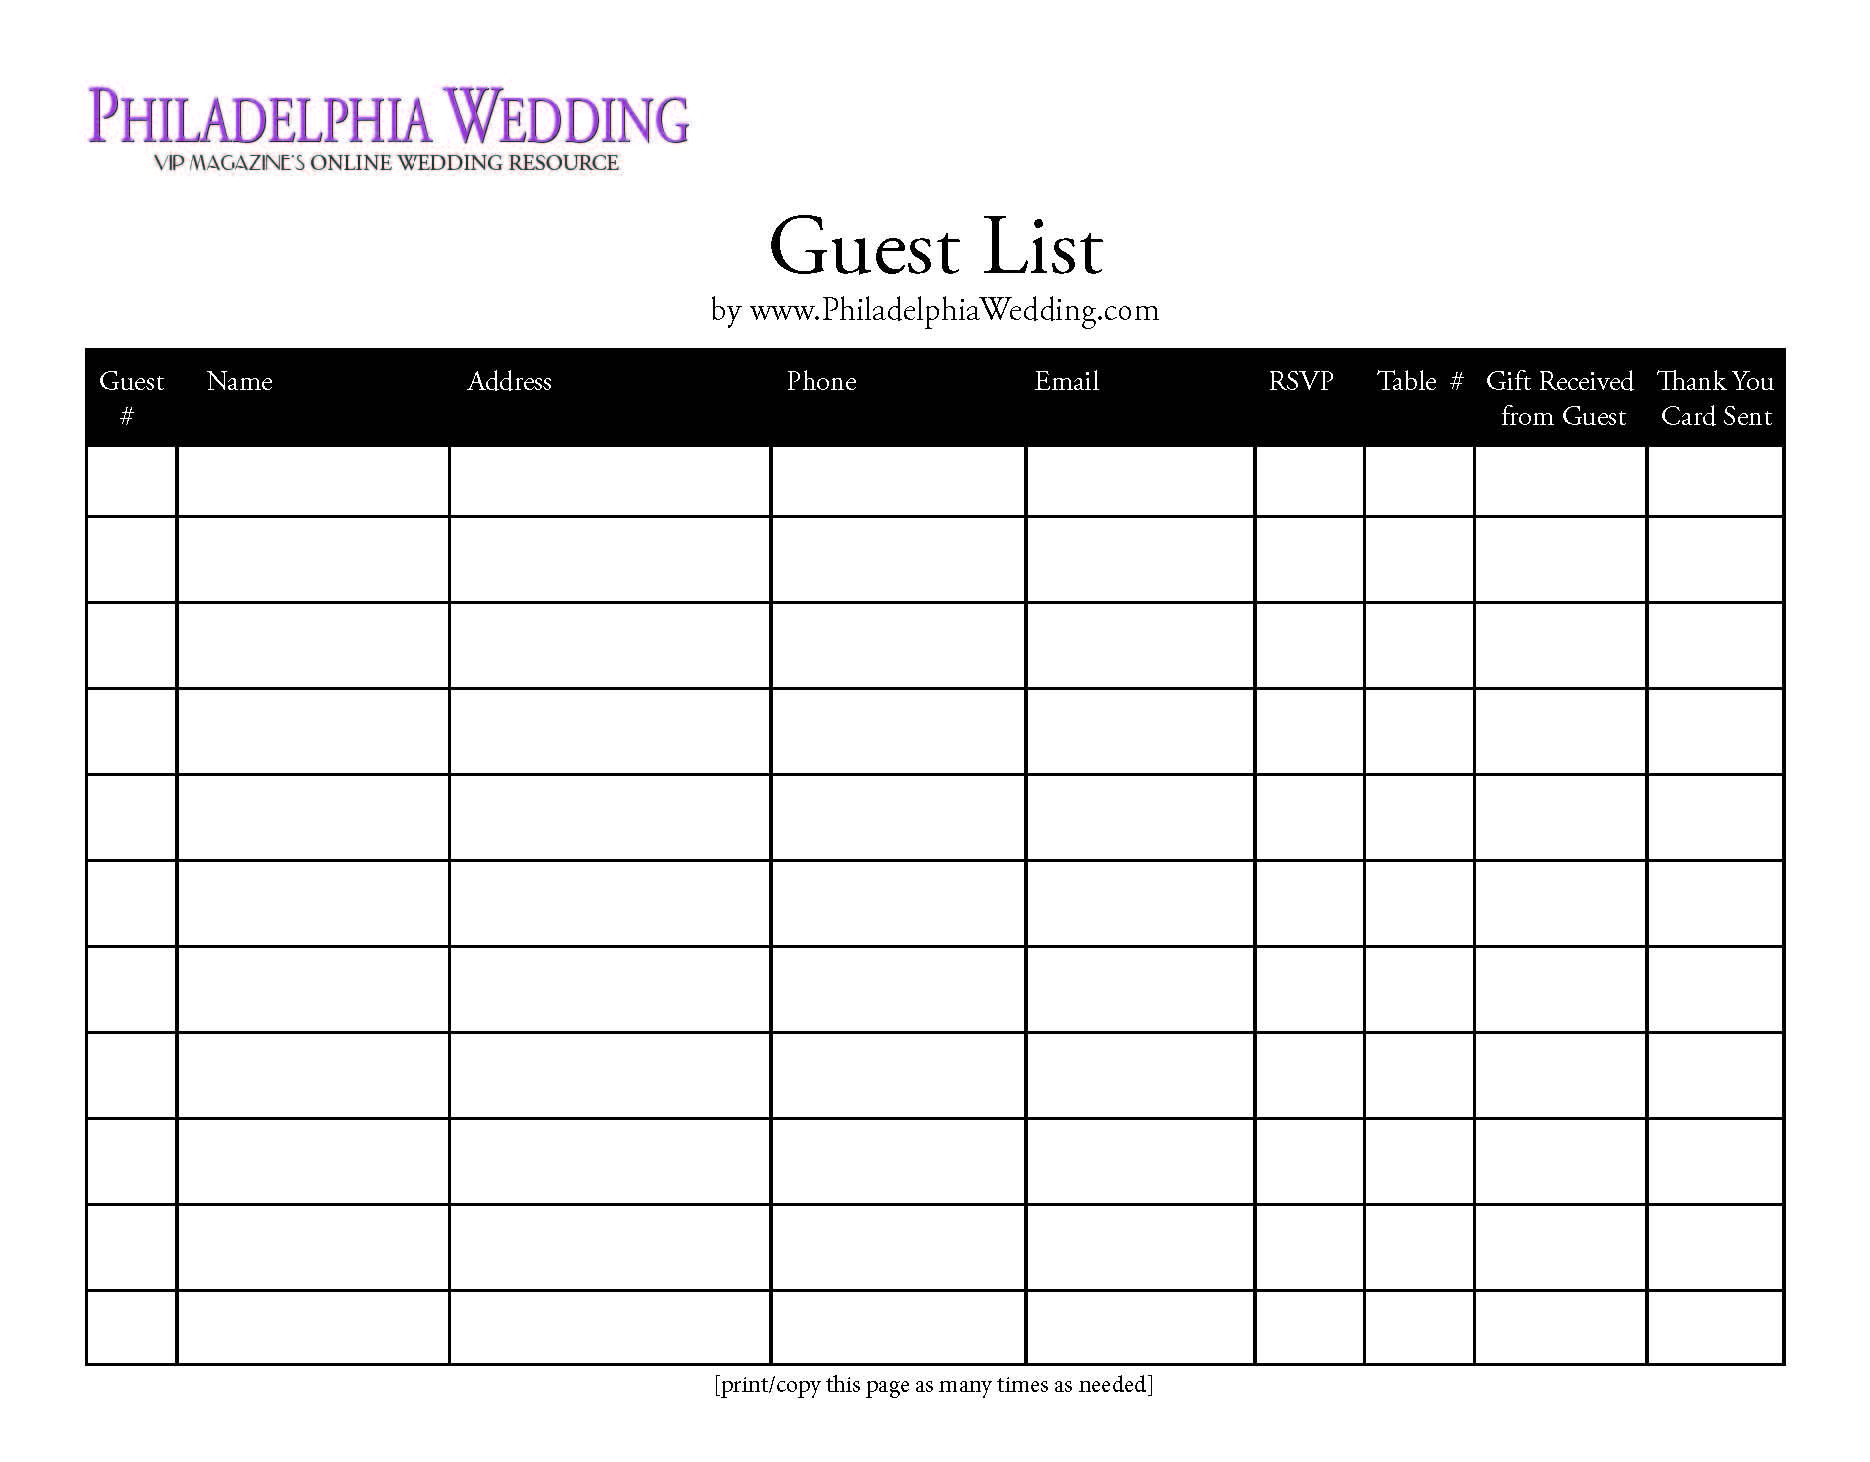 Wedding Guest List Template |  Event Guest List Template